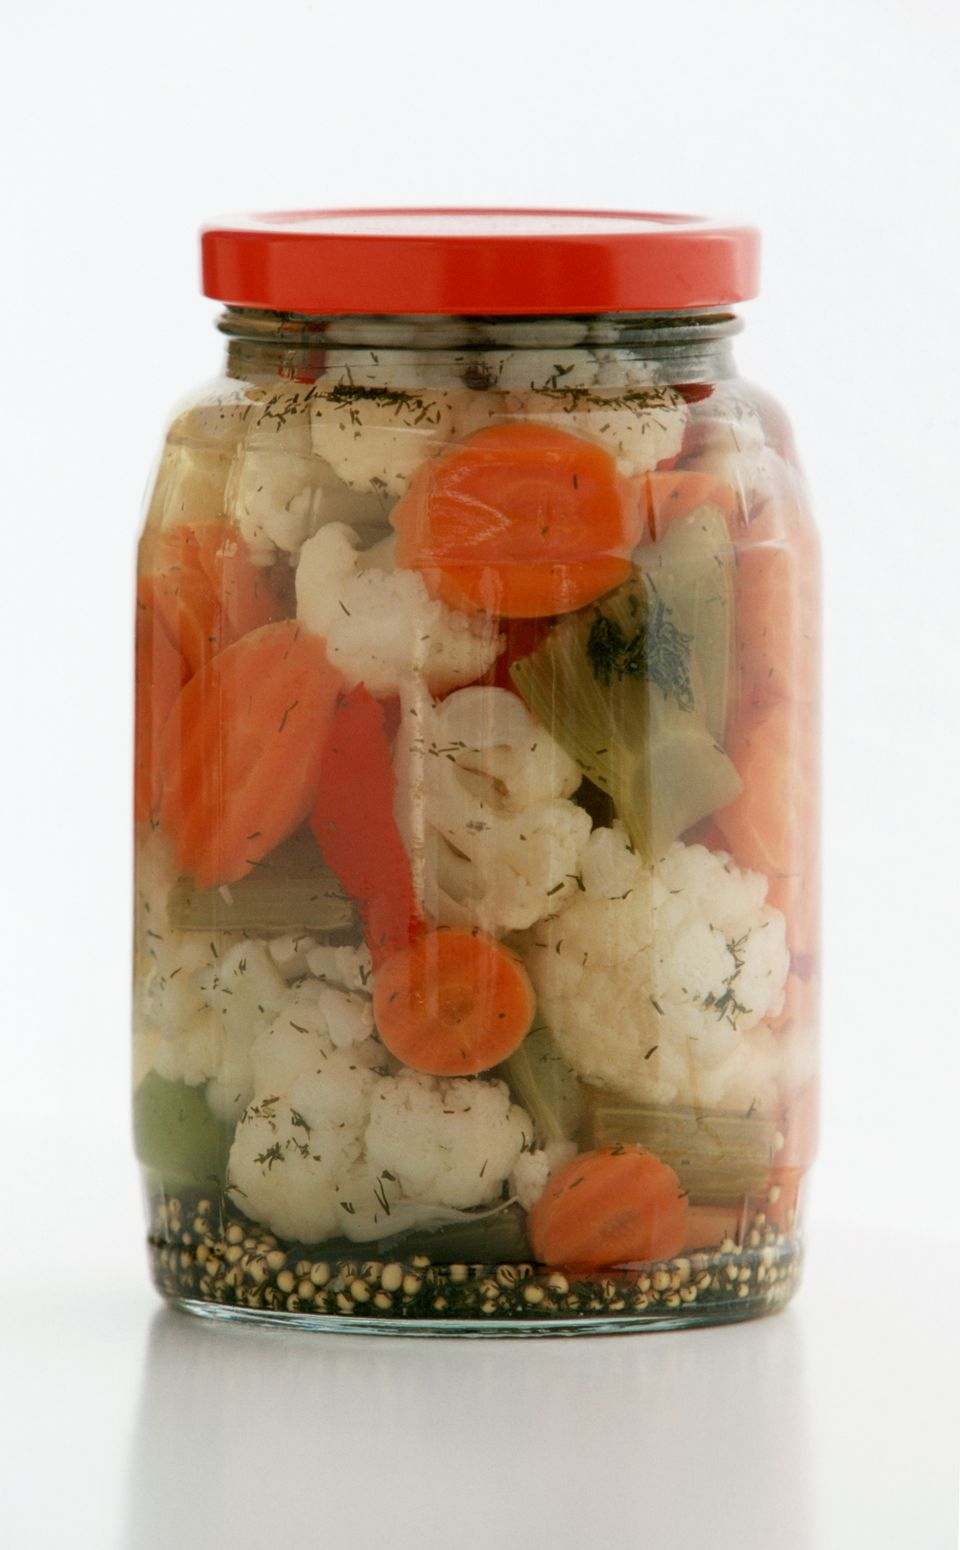 A jar of Giardiniera